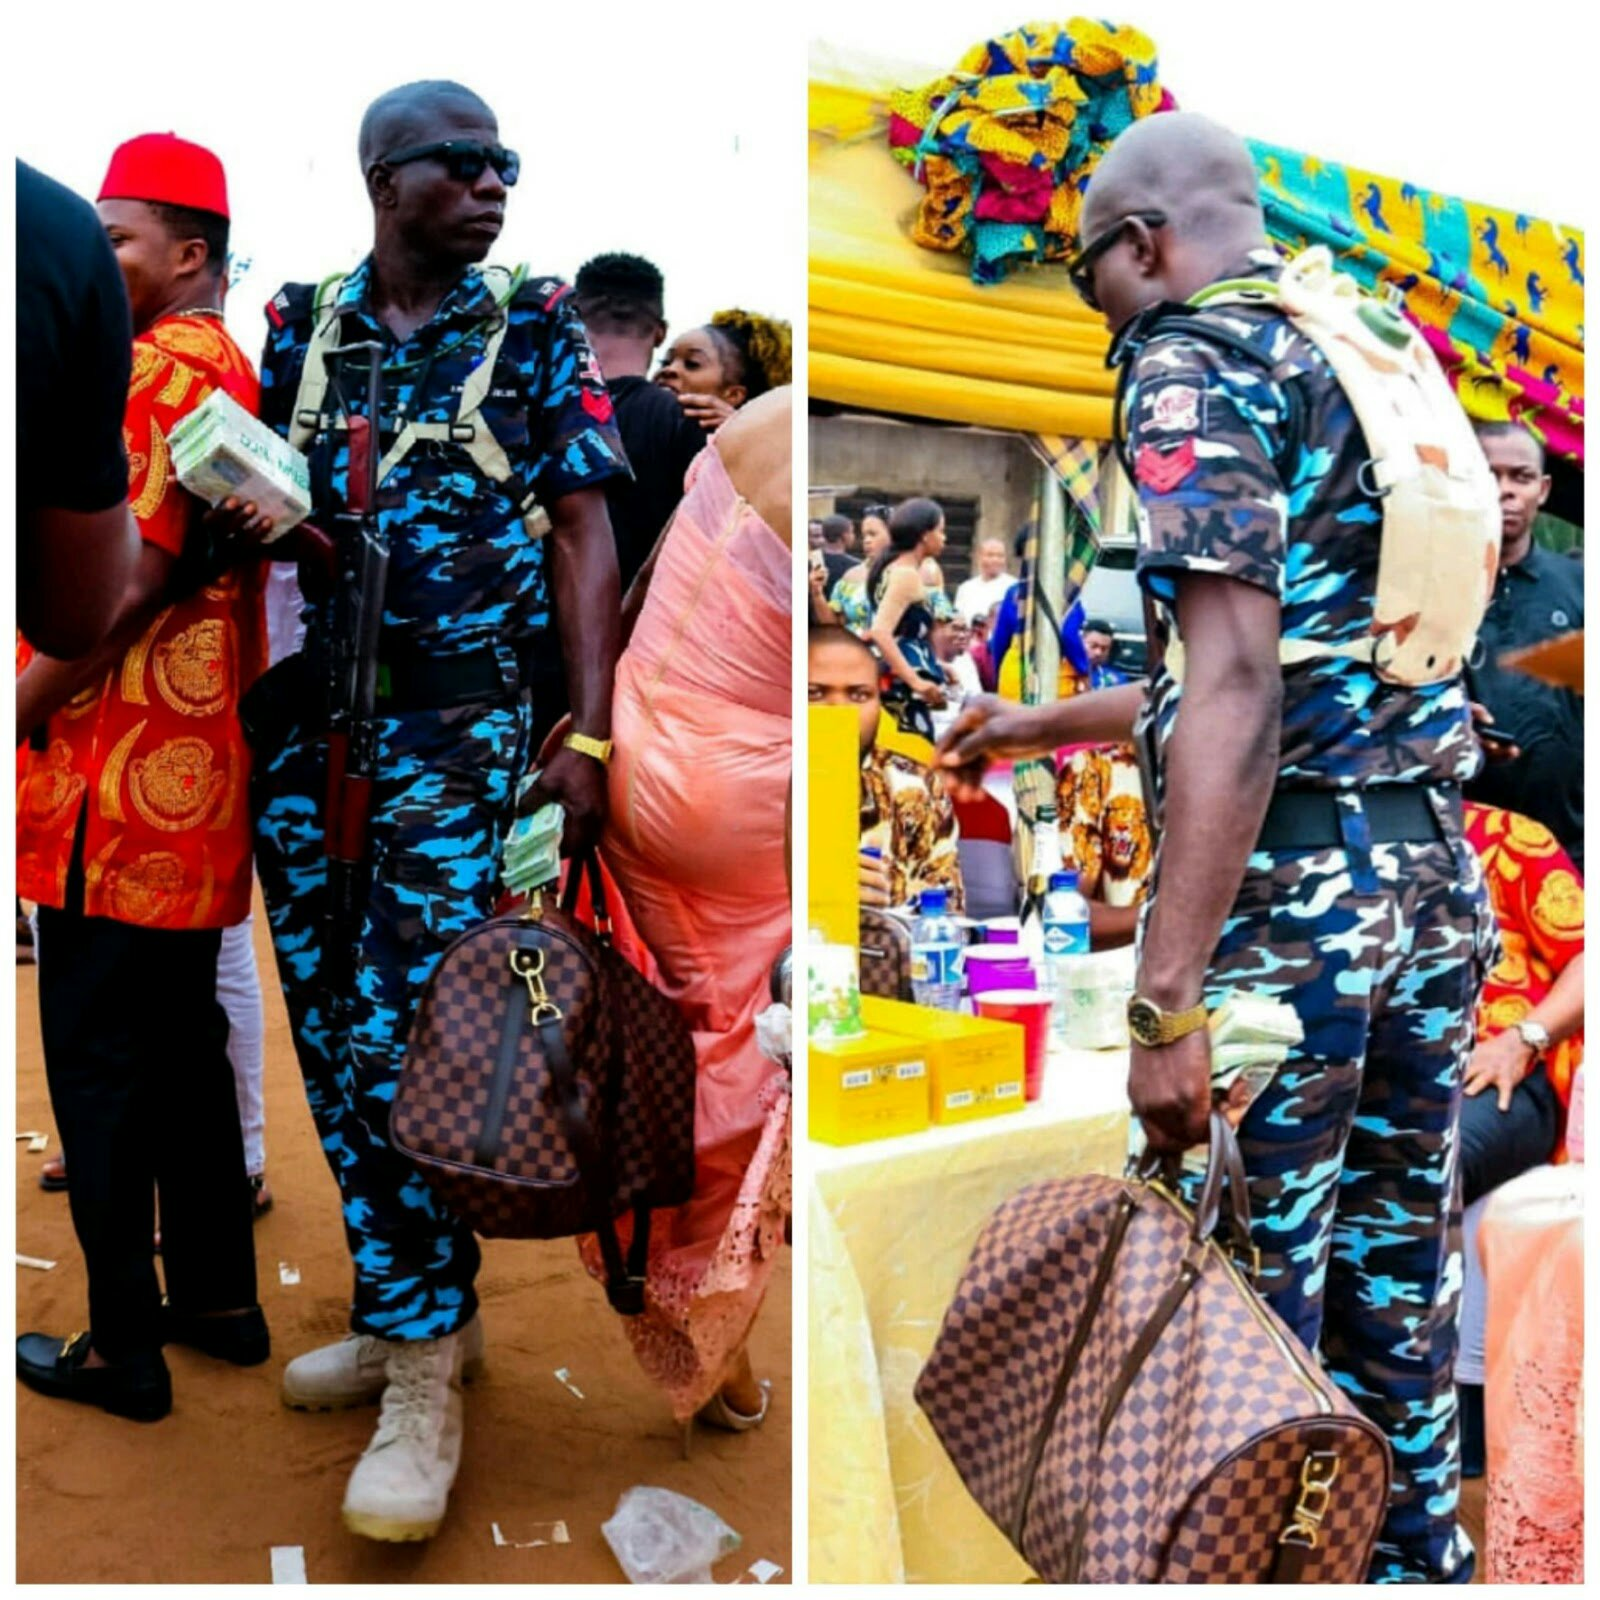 Nigerian Policeman Spotted Carrying A Bag For A Lagos Man At An Event (Photos)